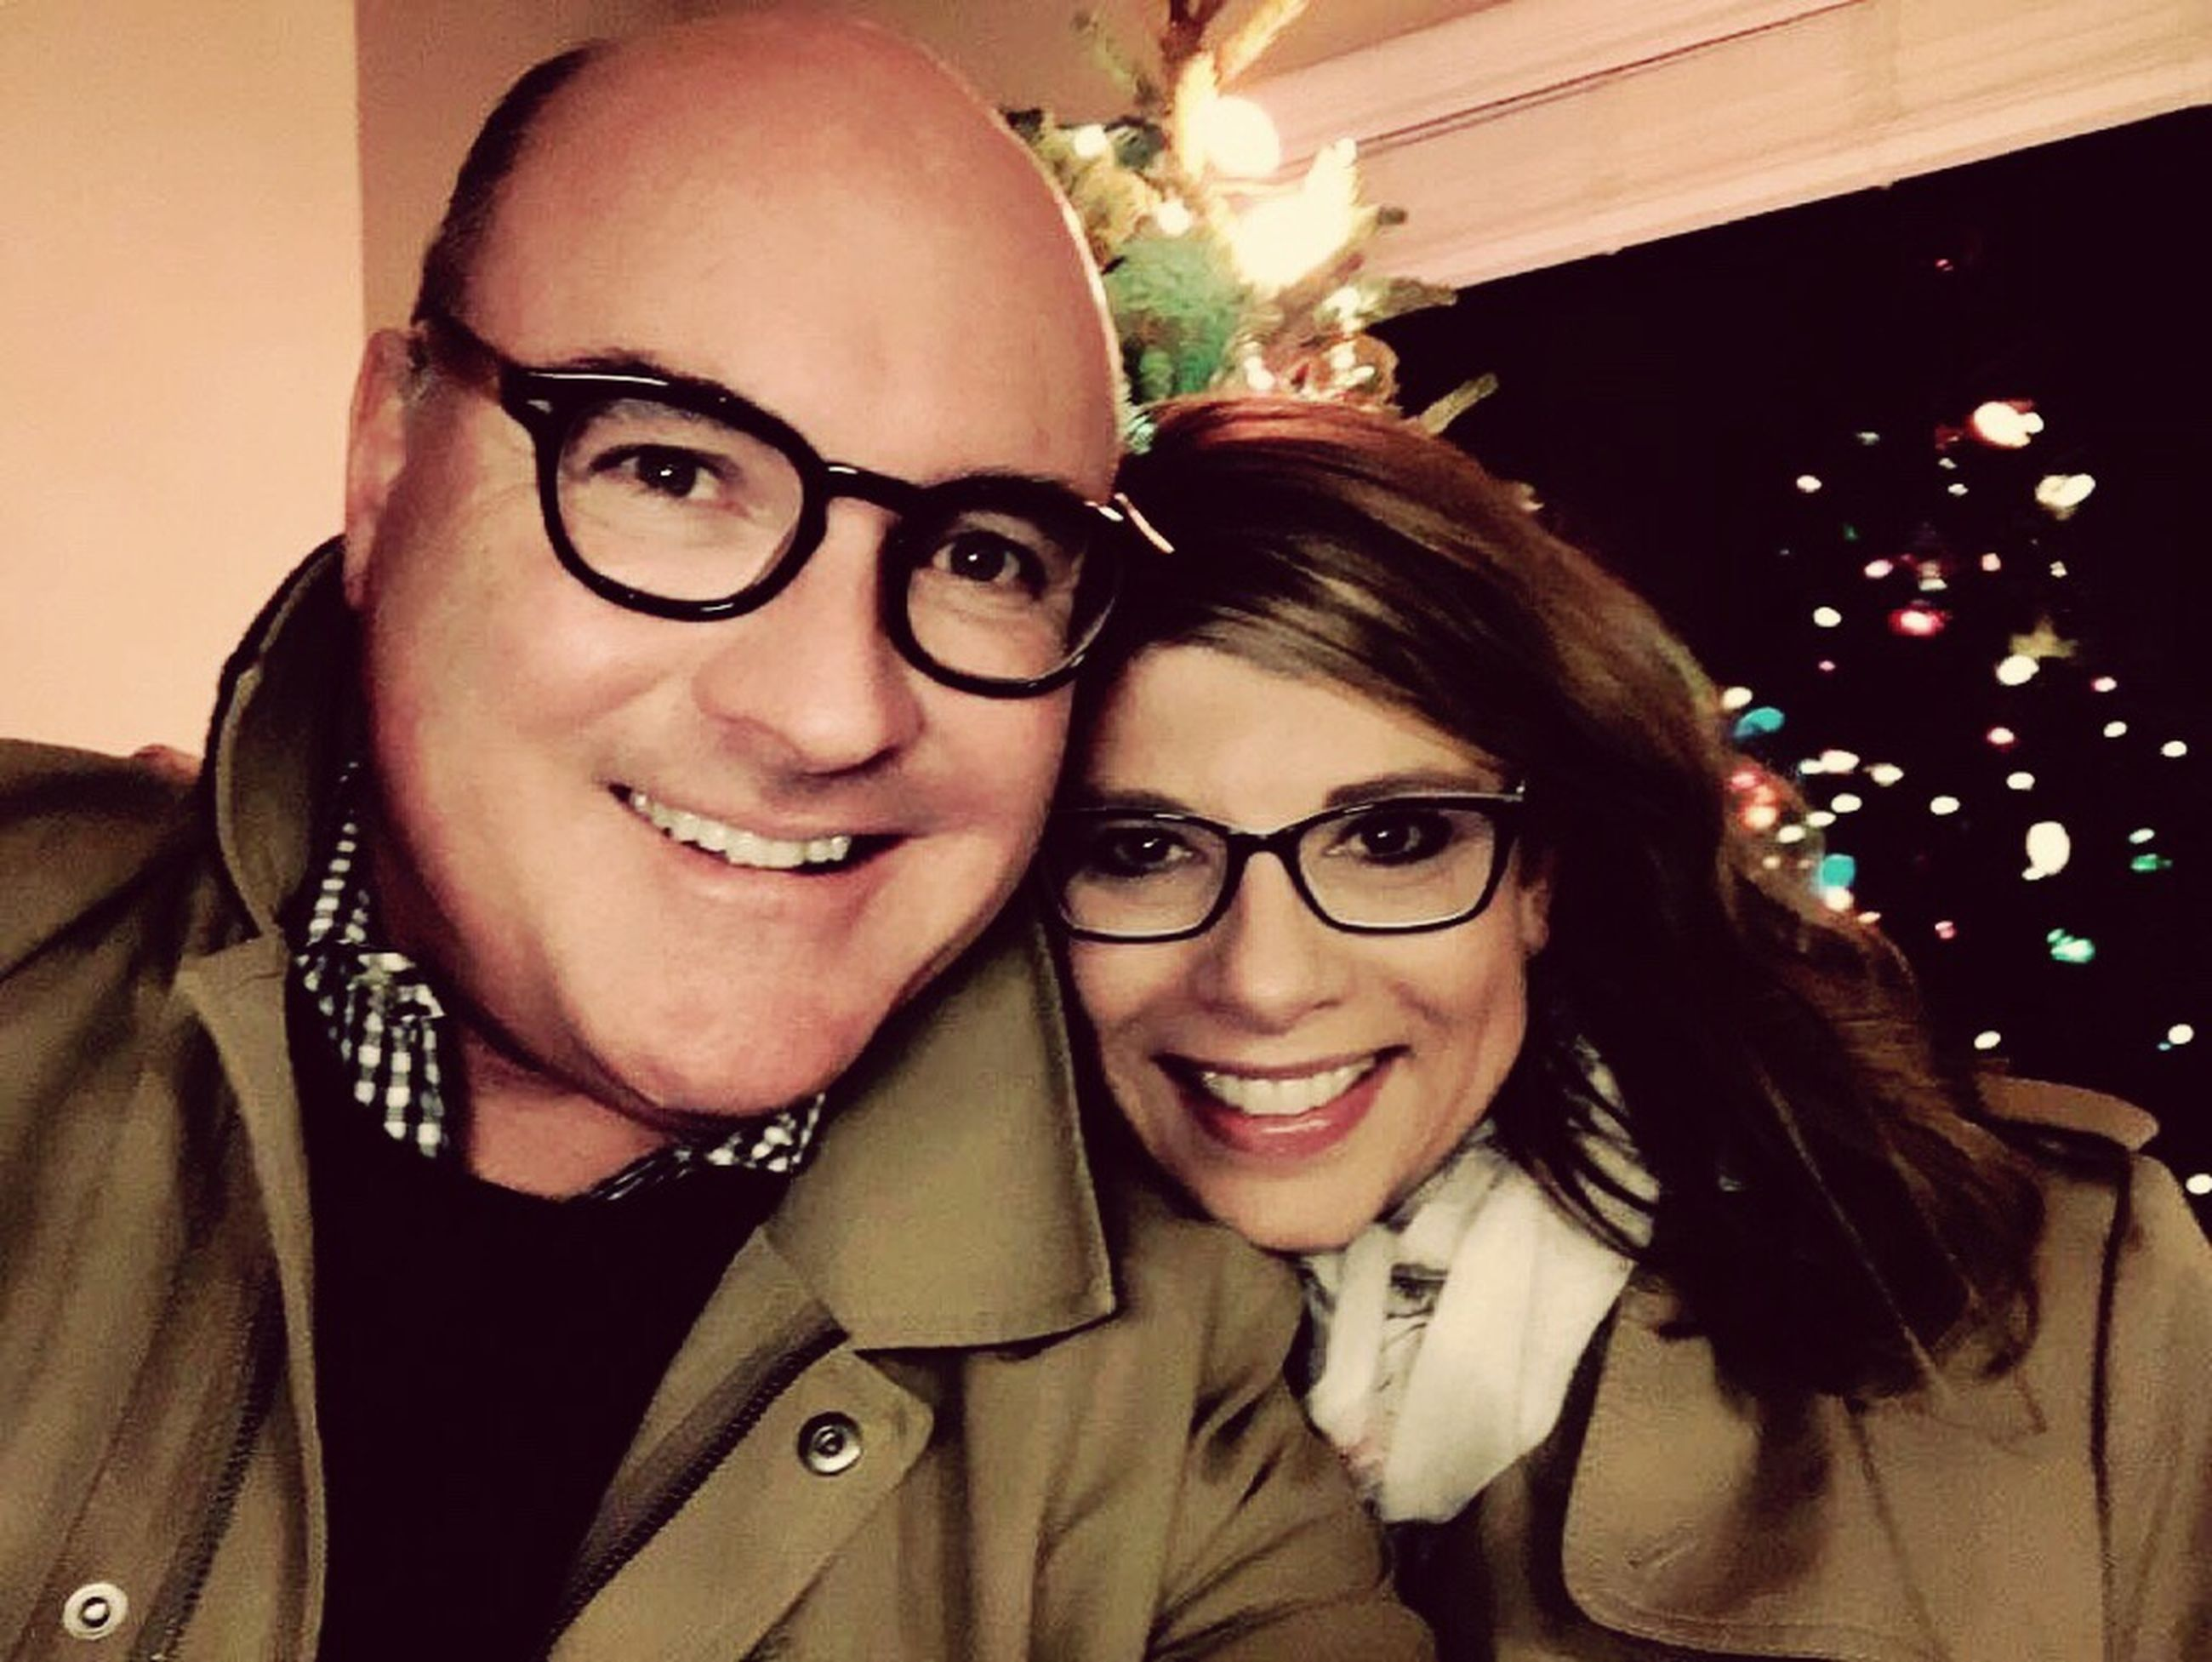 two people, happiness, smiling, adults only, togetherness, portrait, looking at camera, friendship, cheerful, women, adult, people, love, young adult, celebration, only women, eyeglasses, indoors, young women, well-dressed, bonding, night, beautiful woman